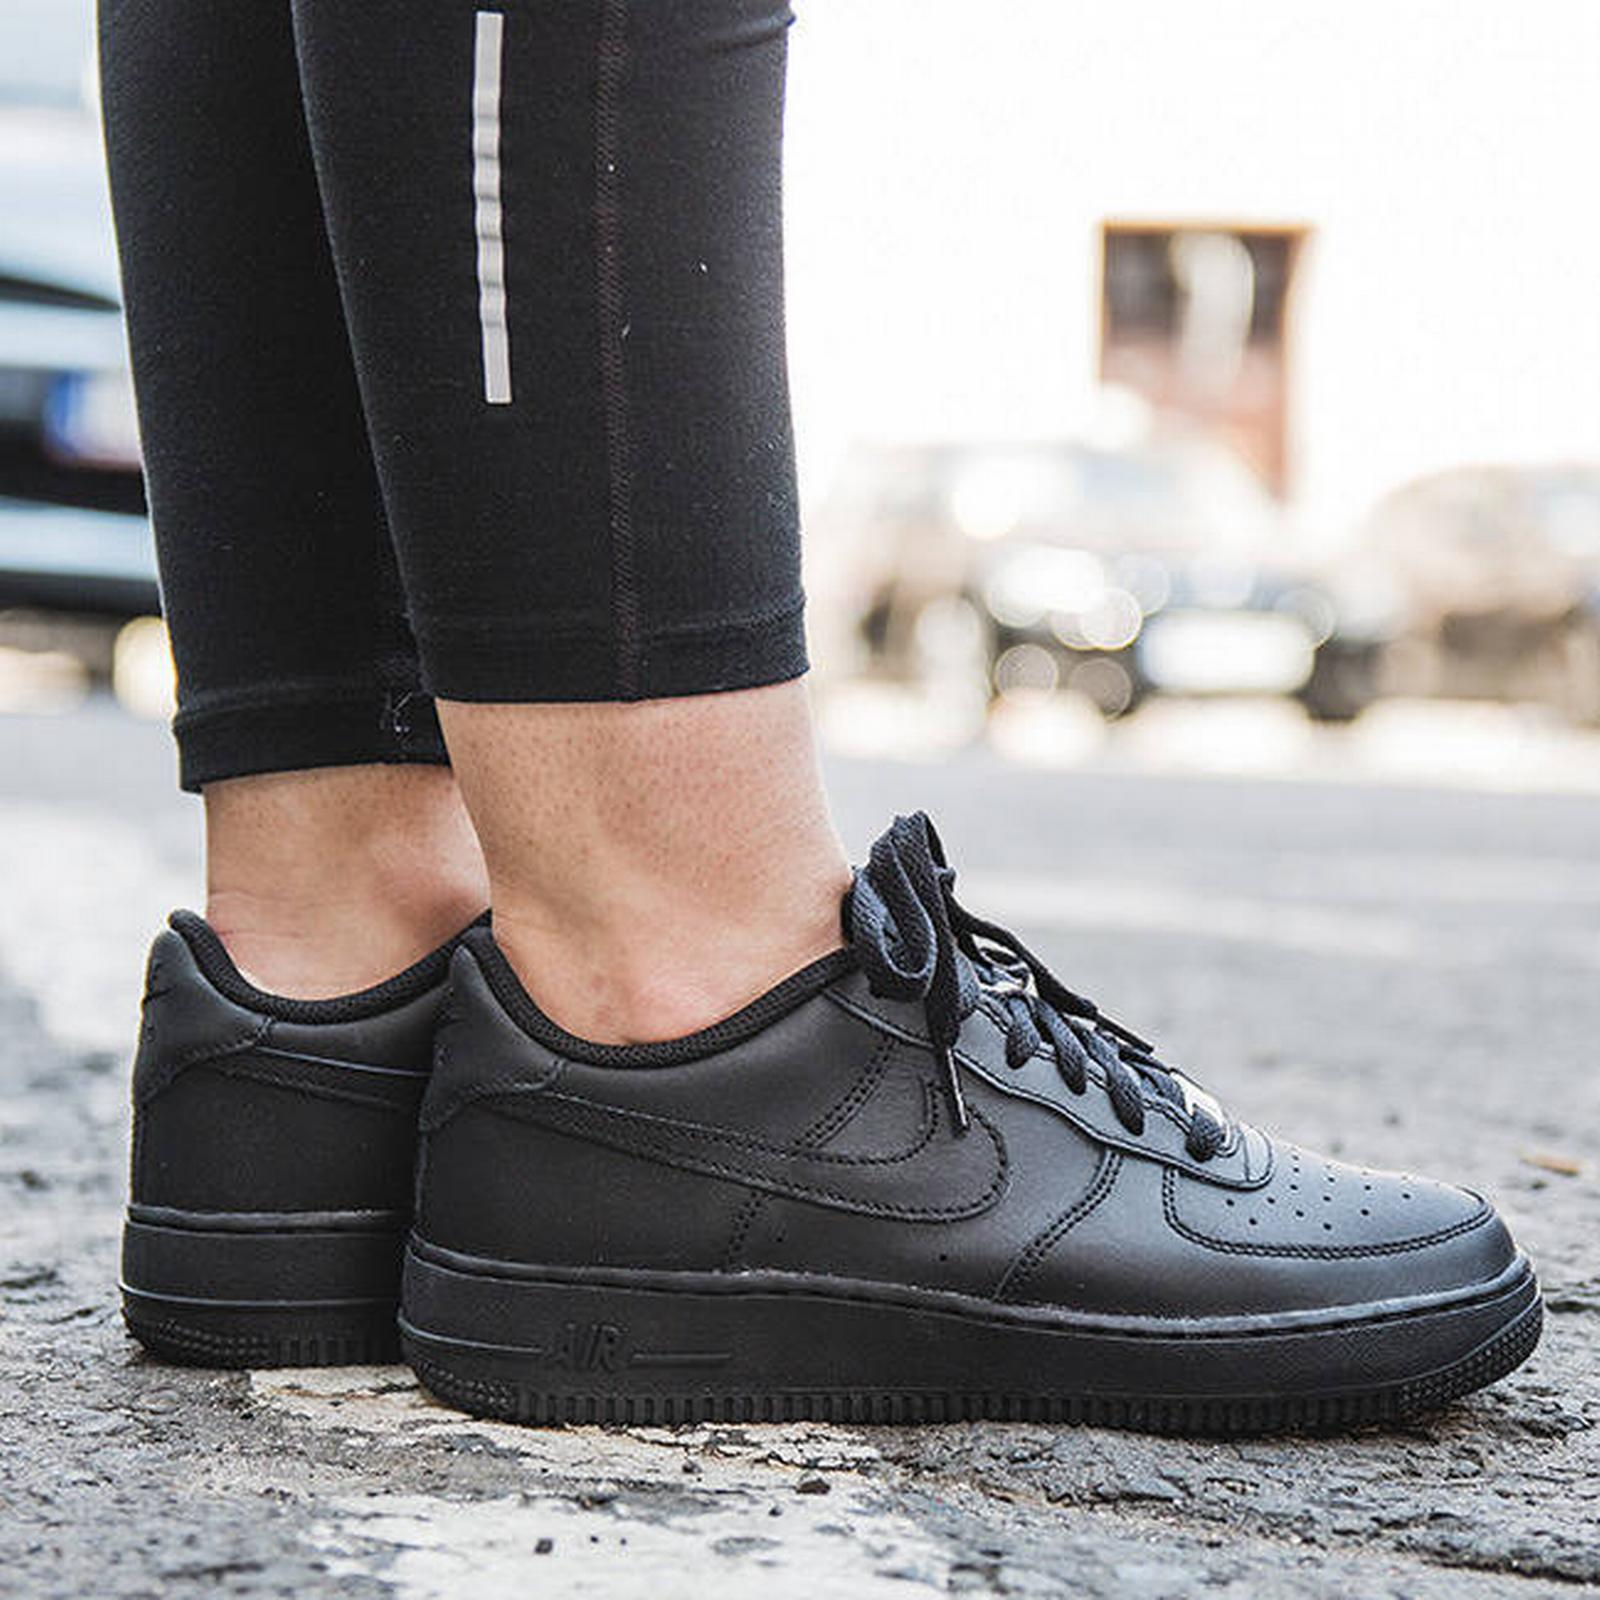 Nike SNEAKER SHOES (GS) NIKE AIR FORCE 1 (GS) SHOES 314192 009 BLACK Size 38,5 f7bc03